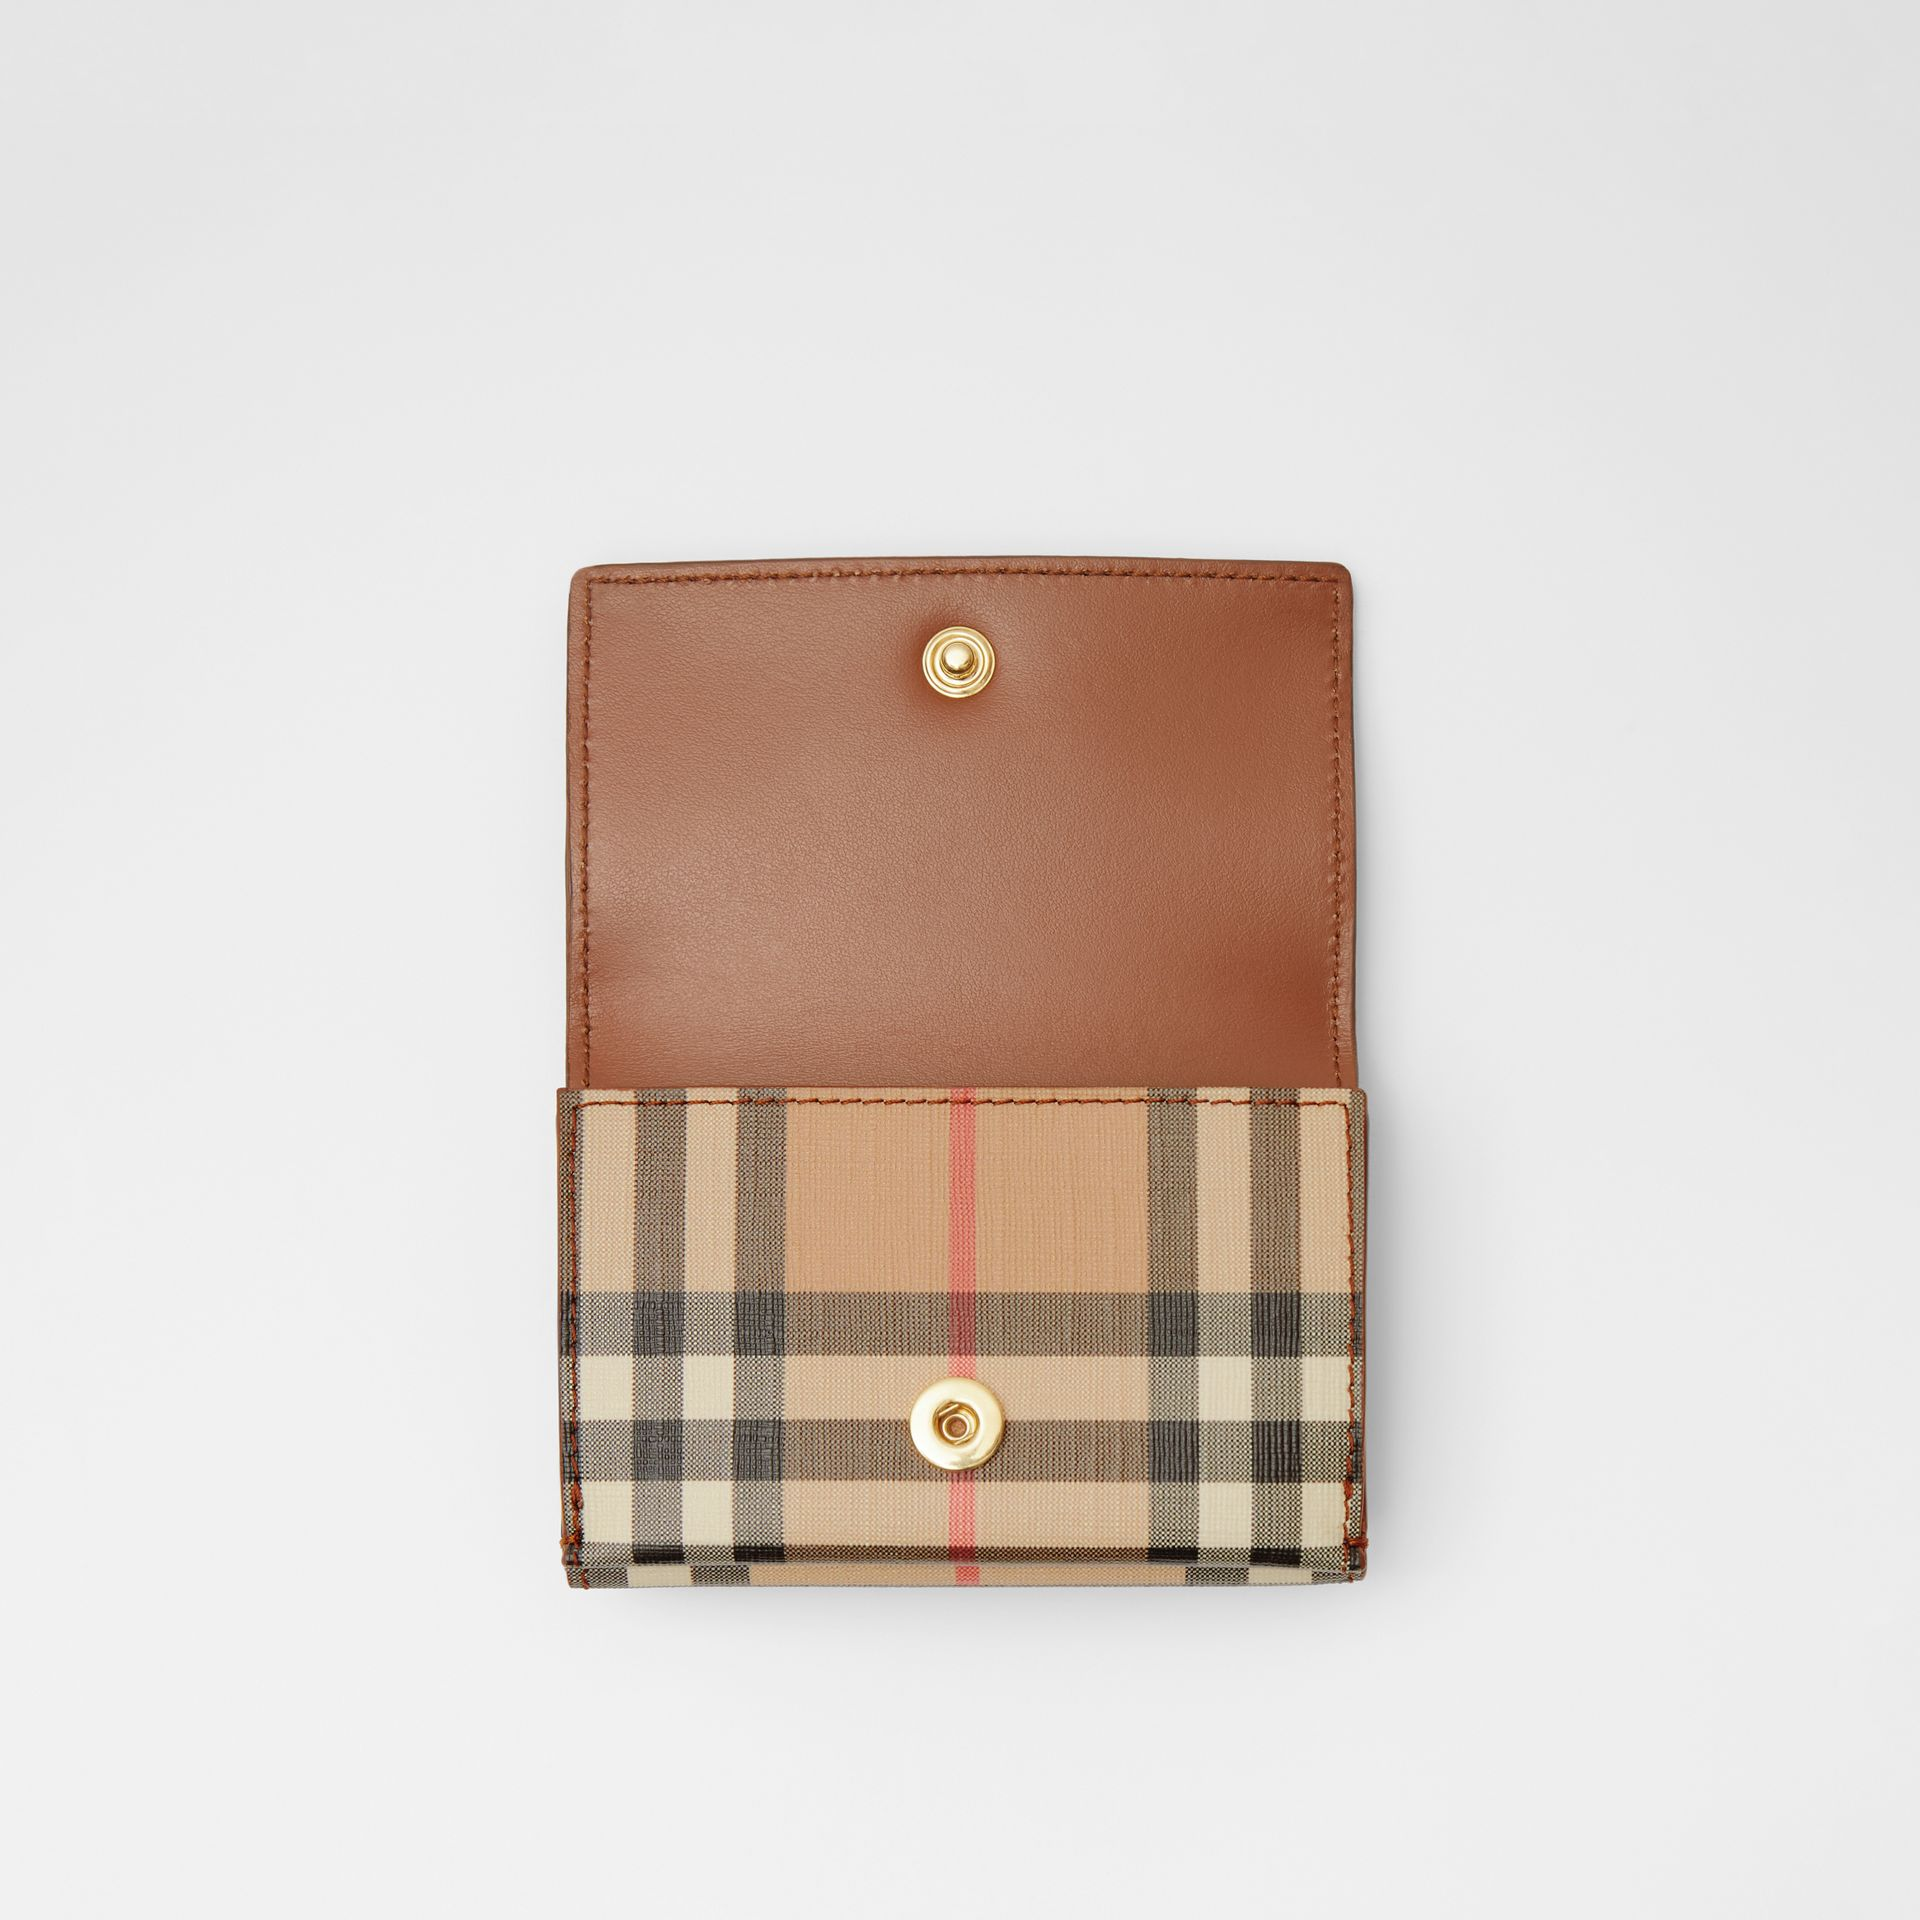 Small Vintage Check E-canvas Folding Wallet in Malt Brown - Women | Burberry - gallery image 2